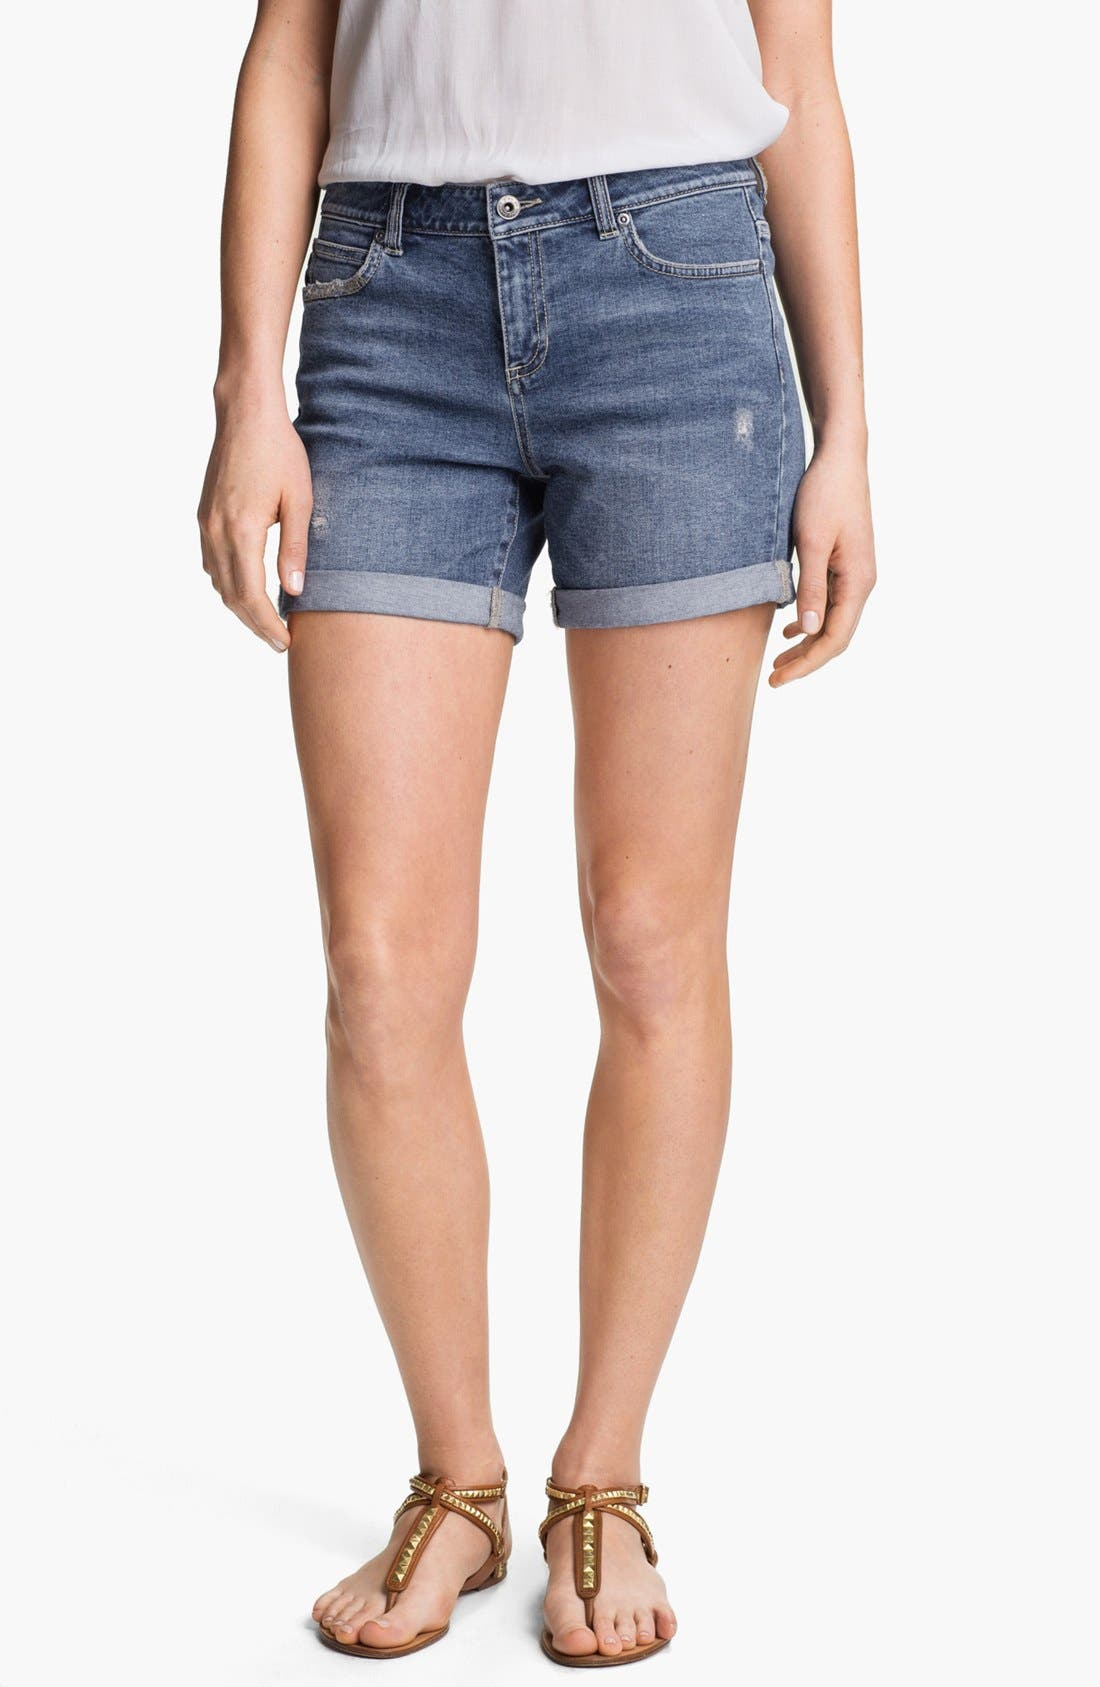 Alternate Image 1 Selected - Two by Vince Camuto Distressed Denim Shorts